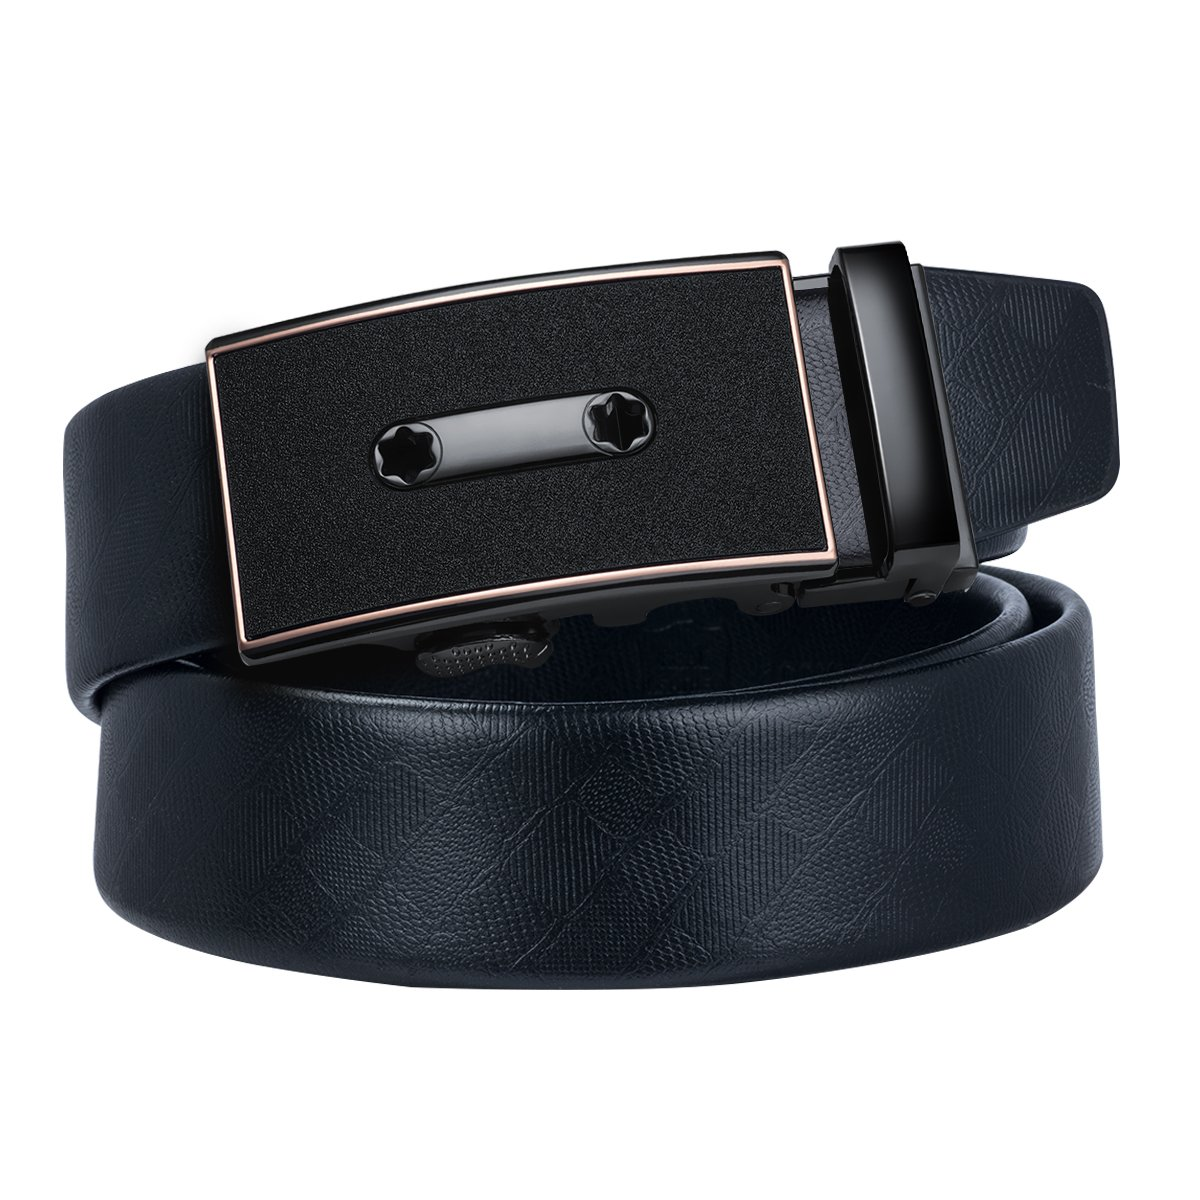 Dubulle Mens Italian Genuine Leather Belt with Removable Buckle Adjustable Automatic Buckle Belt Black Ratchet Belt for Men (DK-0059, waist size 42'' to 48'', belt 55''(150cm))